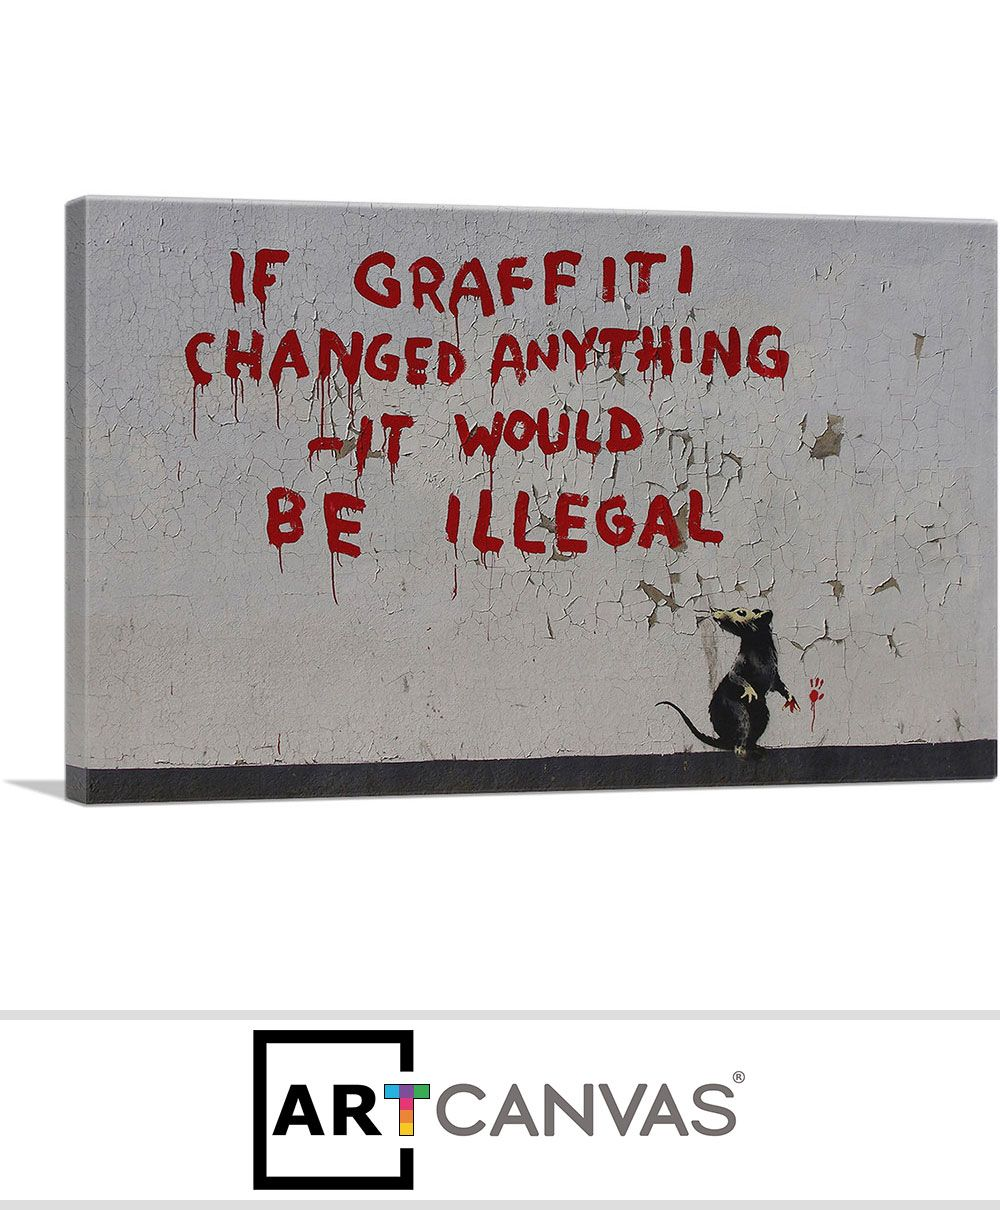 Banksy Canvas Art If Graffiti Changed Anything Canvas Art Print For Sale Artcanvas